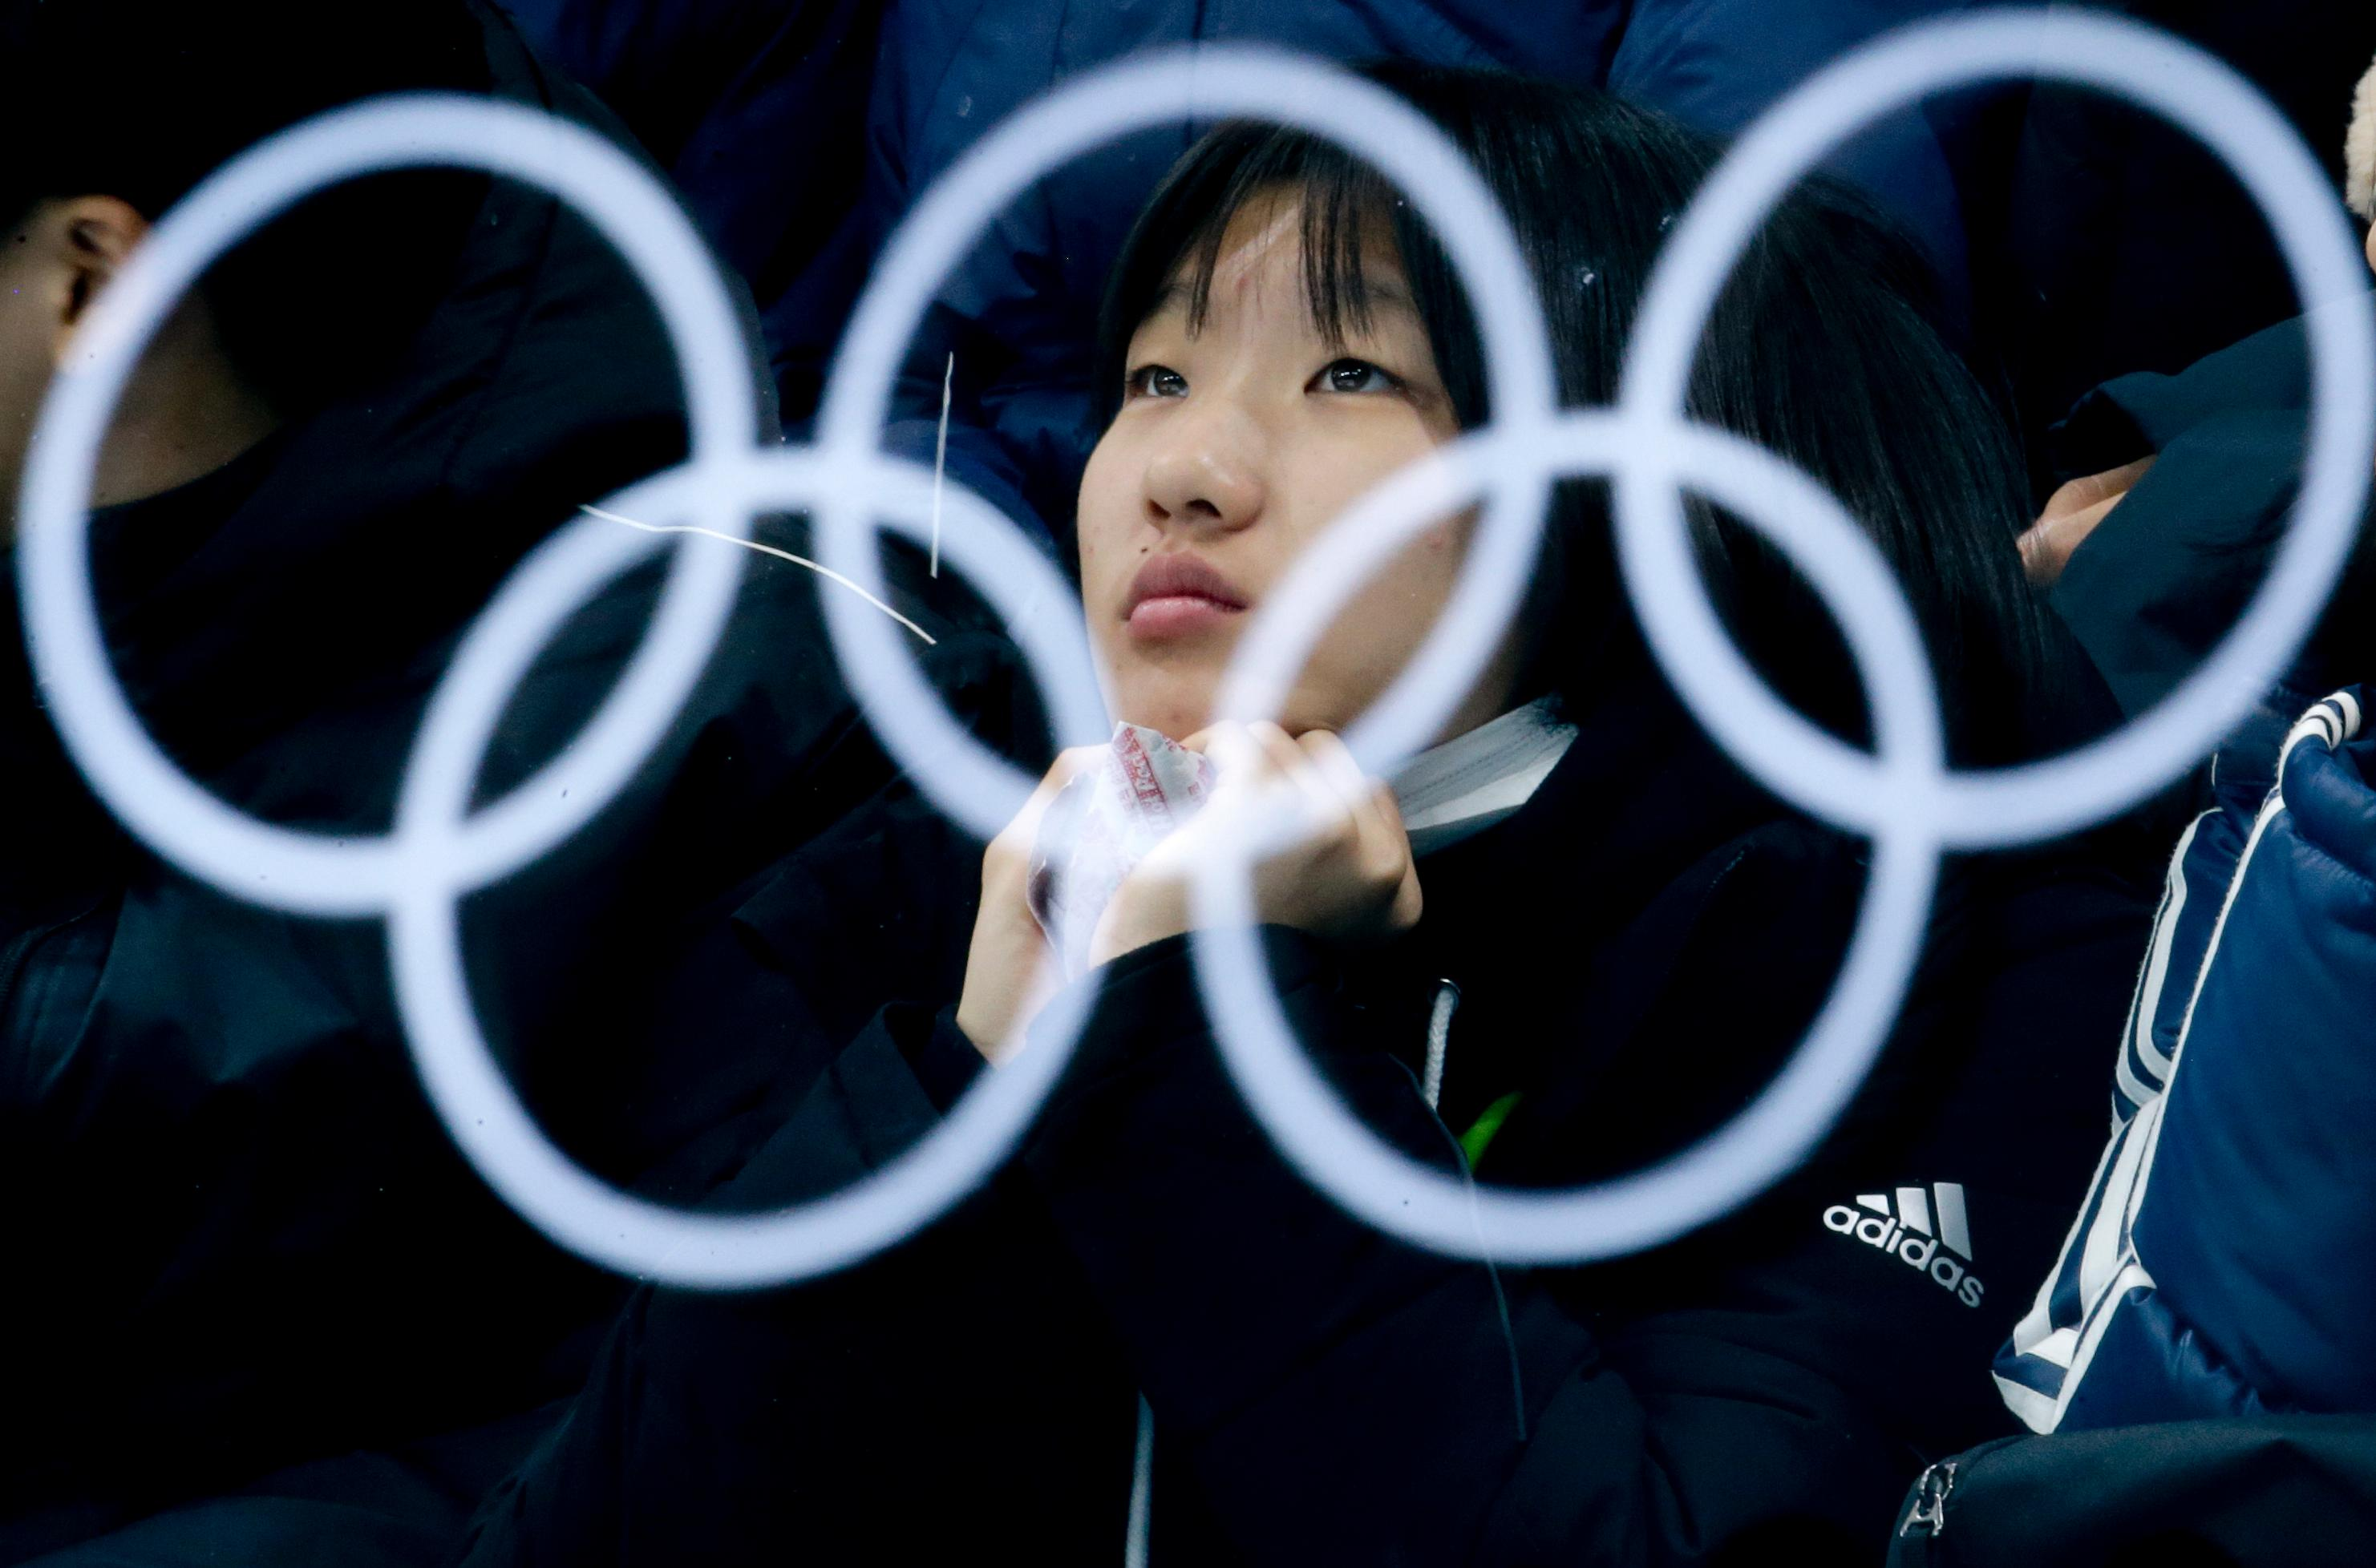 The Olympic rings are reflected in a glass as a spectator watches the mixed doubles semi-final curling match between Canada and Norway at the 2018 Winter Olympics in Gangneung, South Korea, Monday, Feb. 12, 2018. (AP Photo/Natacha Pisarenko)